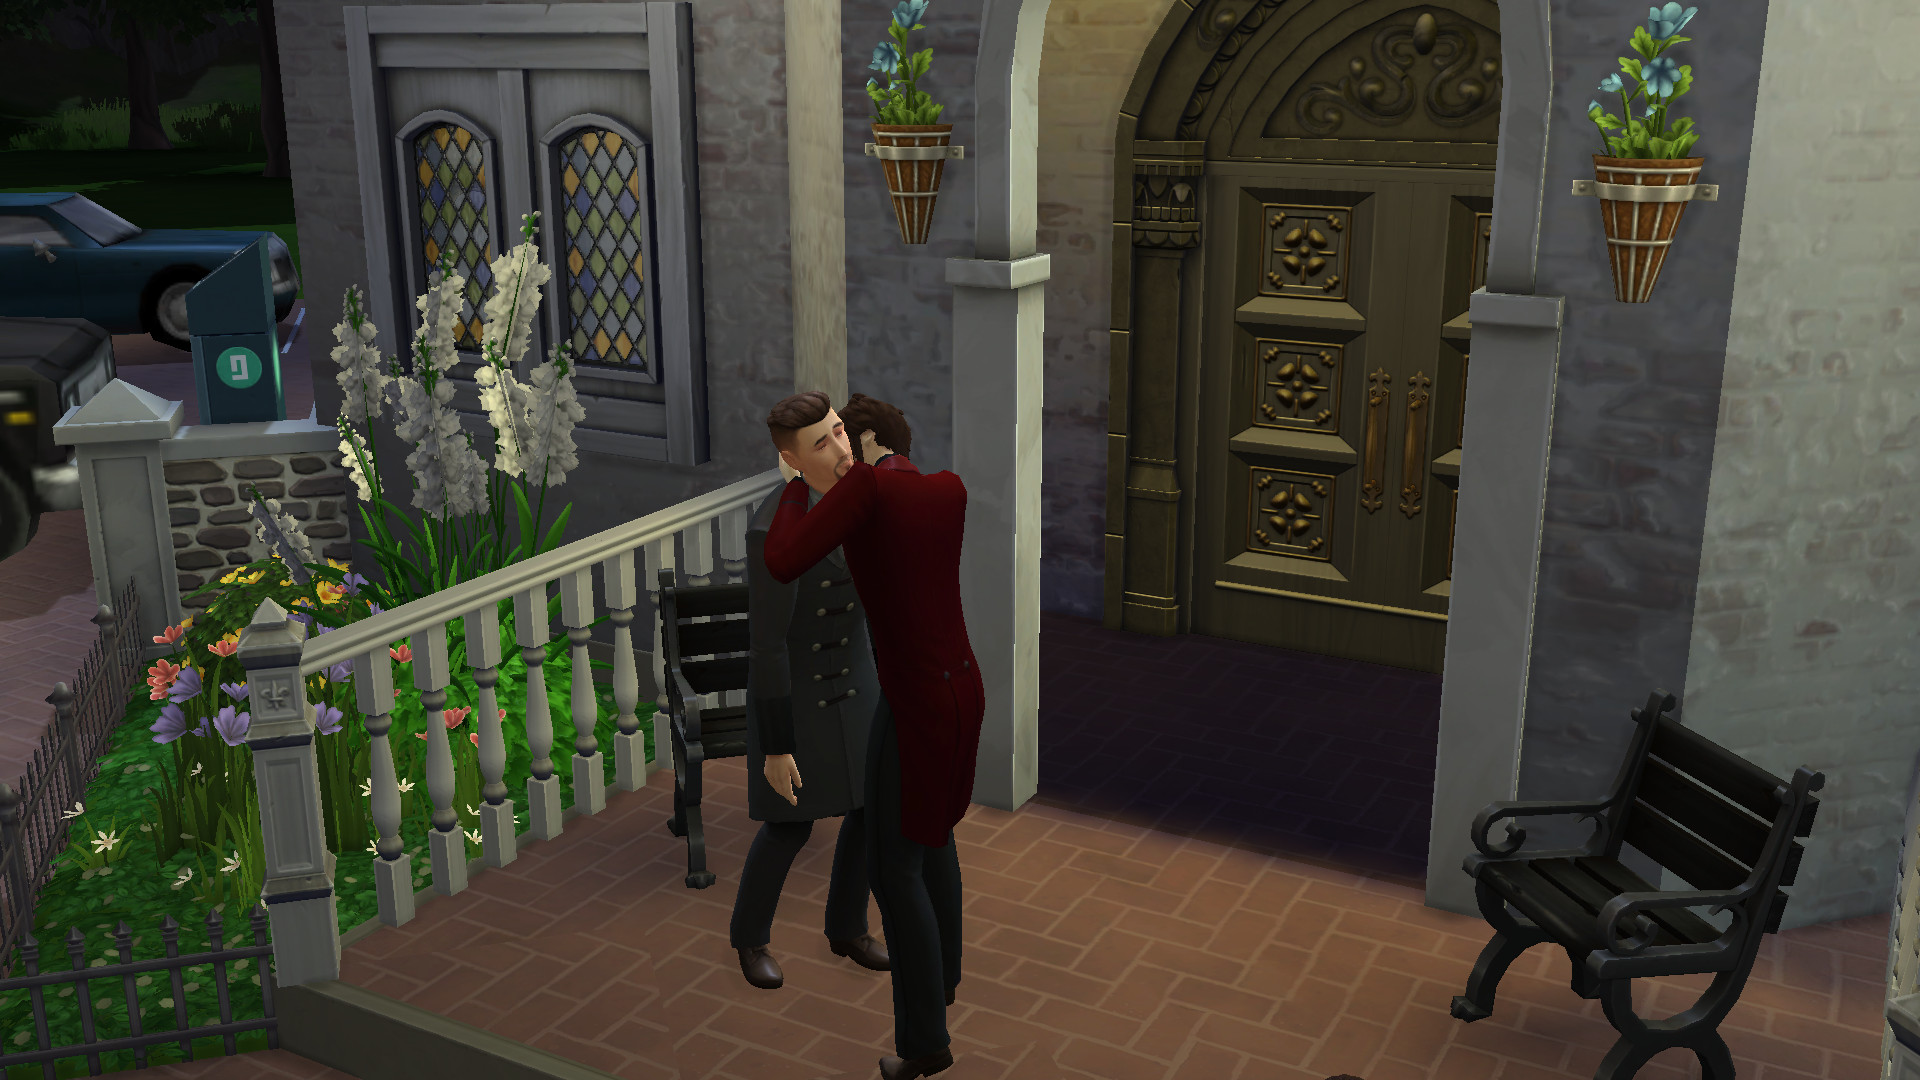 Mod The Sims - Vampire Death & More Mod